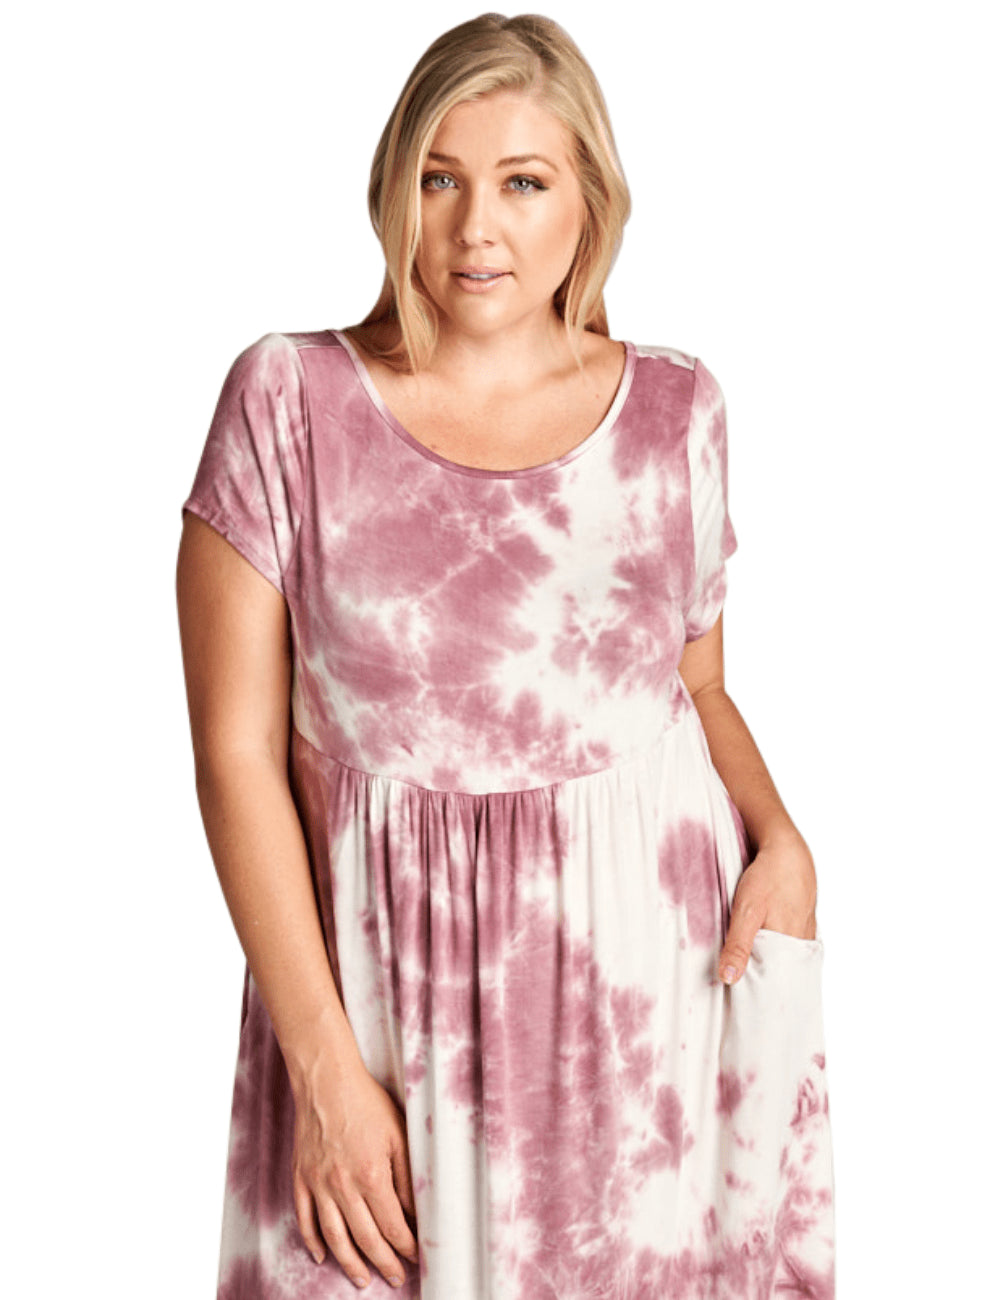 plus size T-Shirt Dress XL / AUS 14 - 16 / Pink Delilah Dress